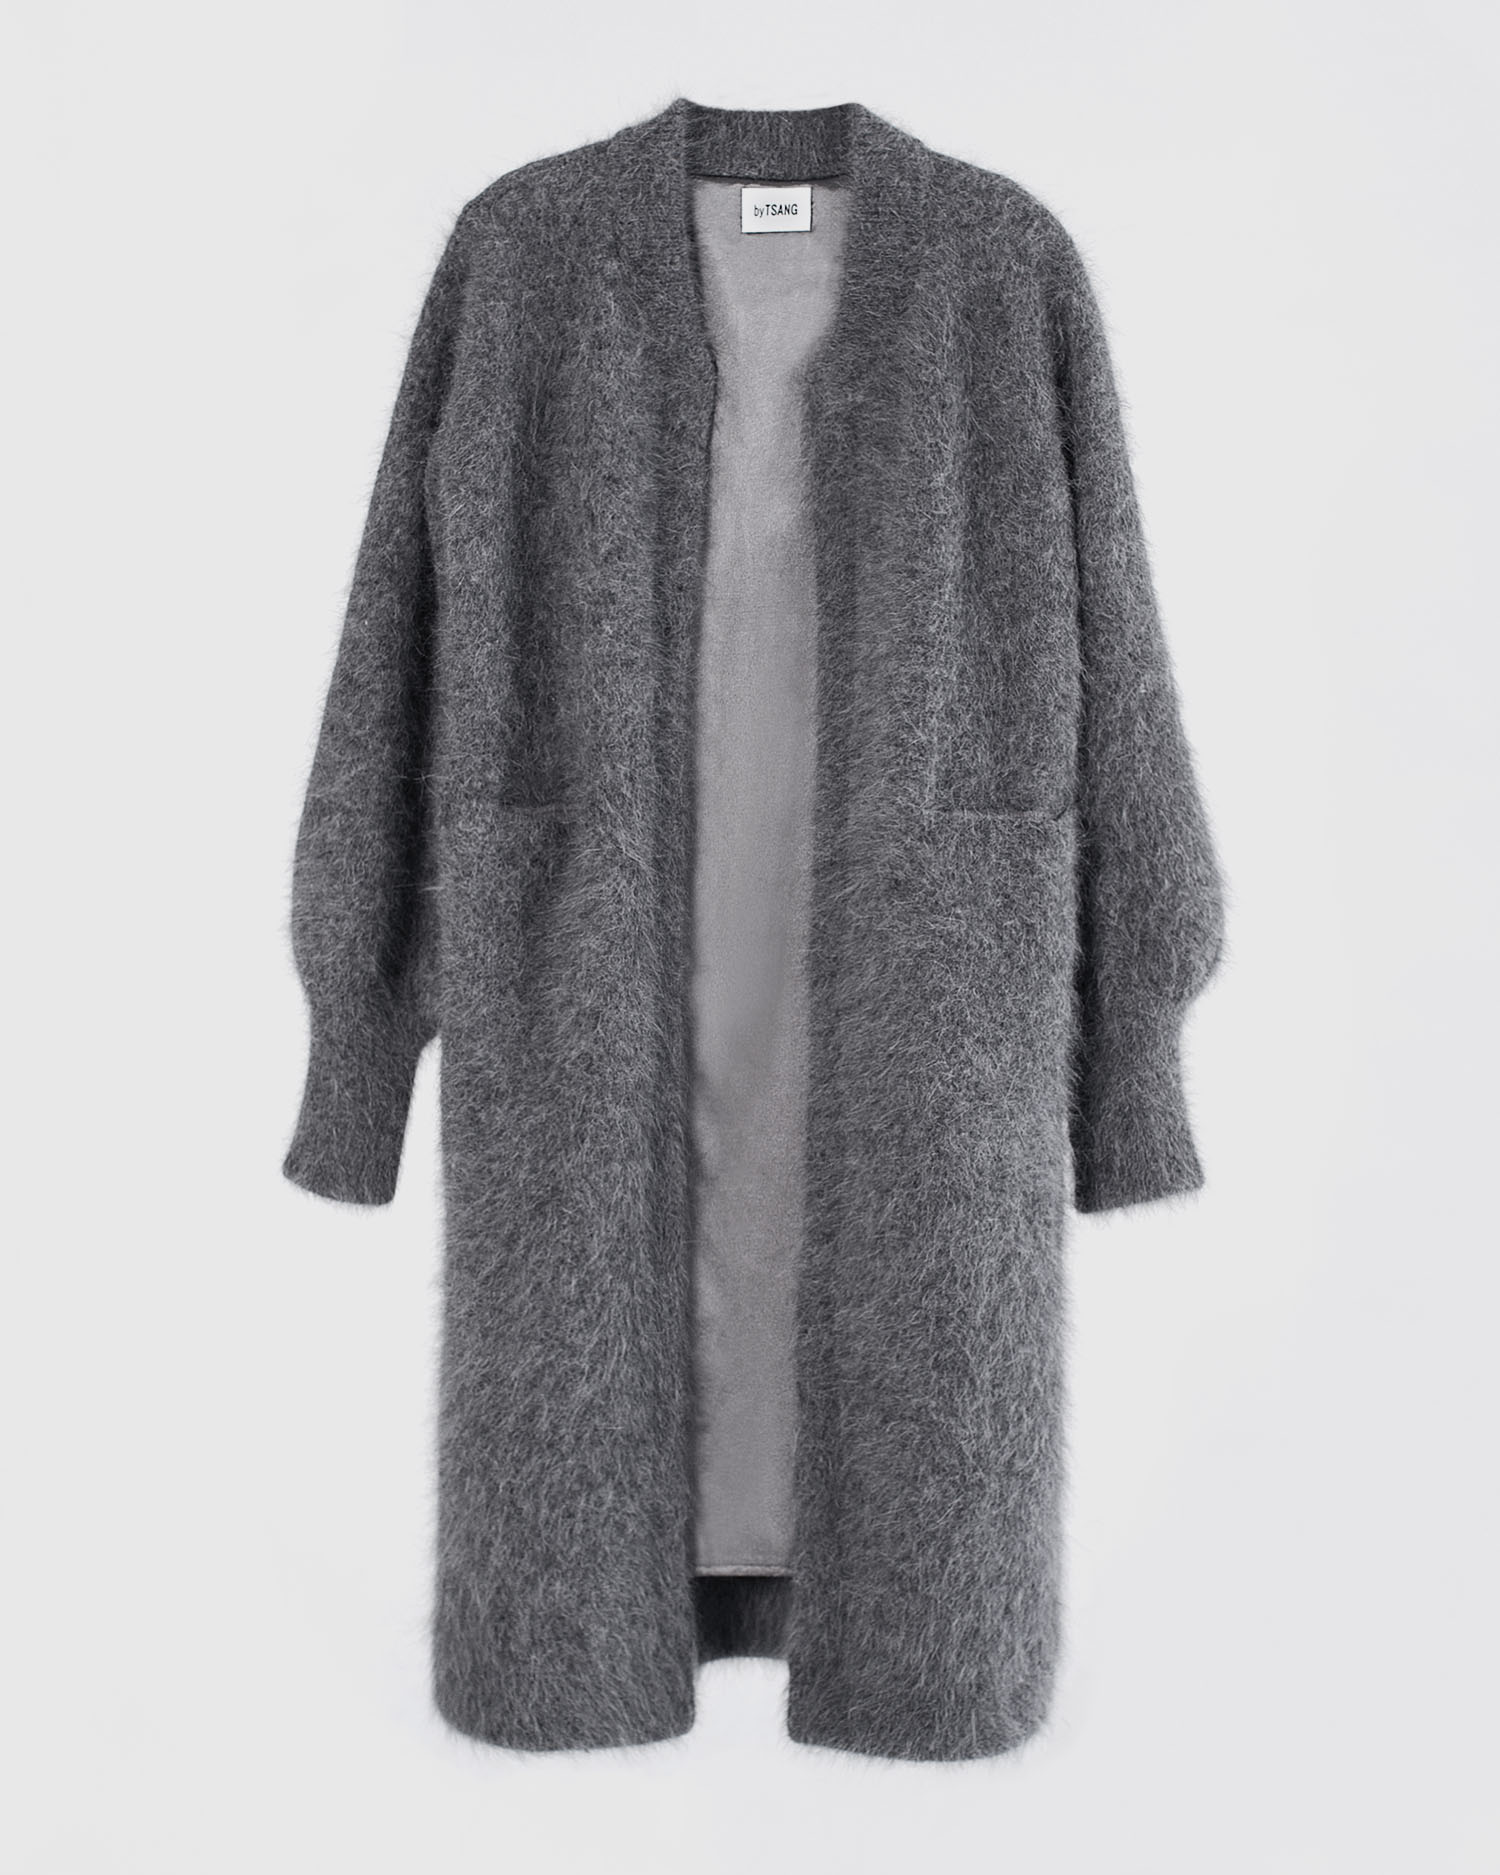 byTSANG season II fuzzy cardigan coat in dove grey